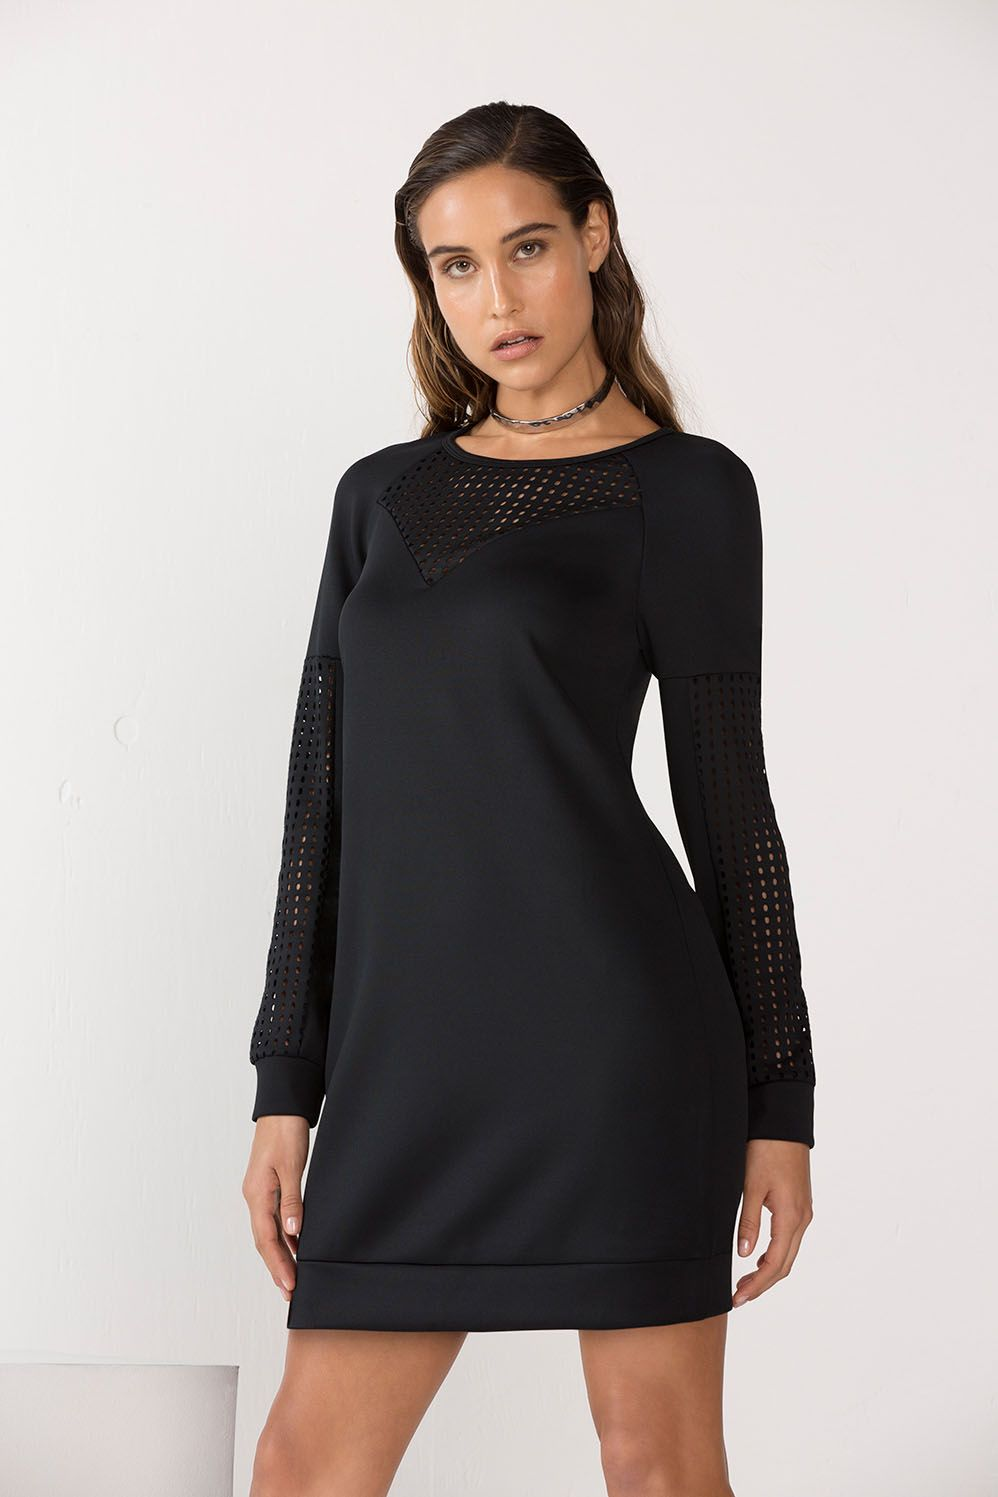 Just as the weather is getting cooler, your dresses are too. Get in some extra airflow in our perforated-paneled mini dress crafted from a much-loved, stretch neoprene fabric which keeps it shape after wear.